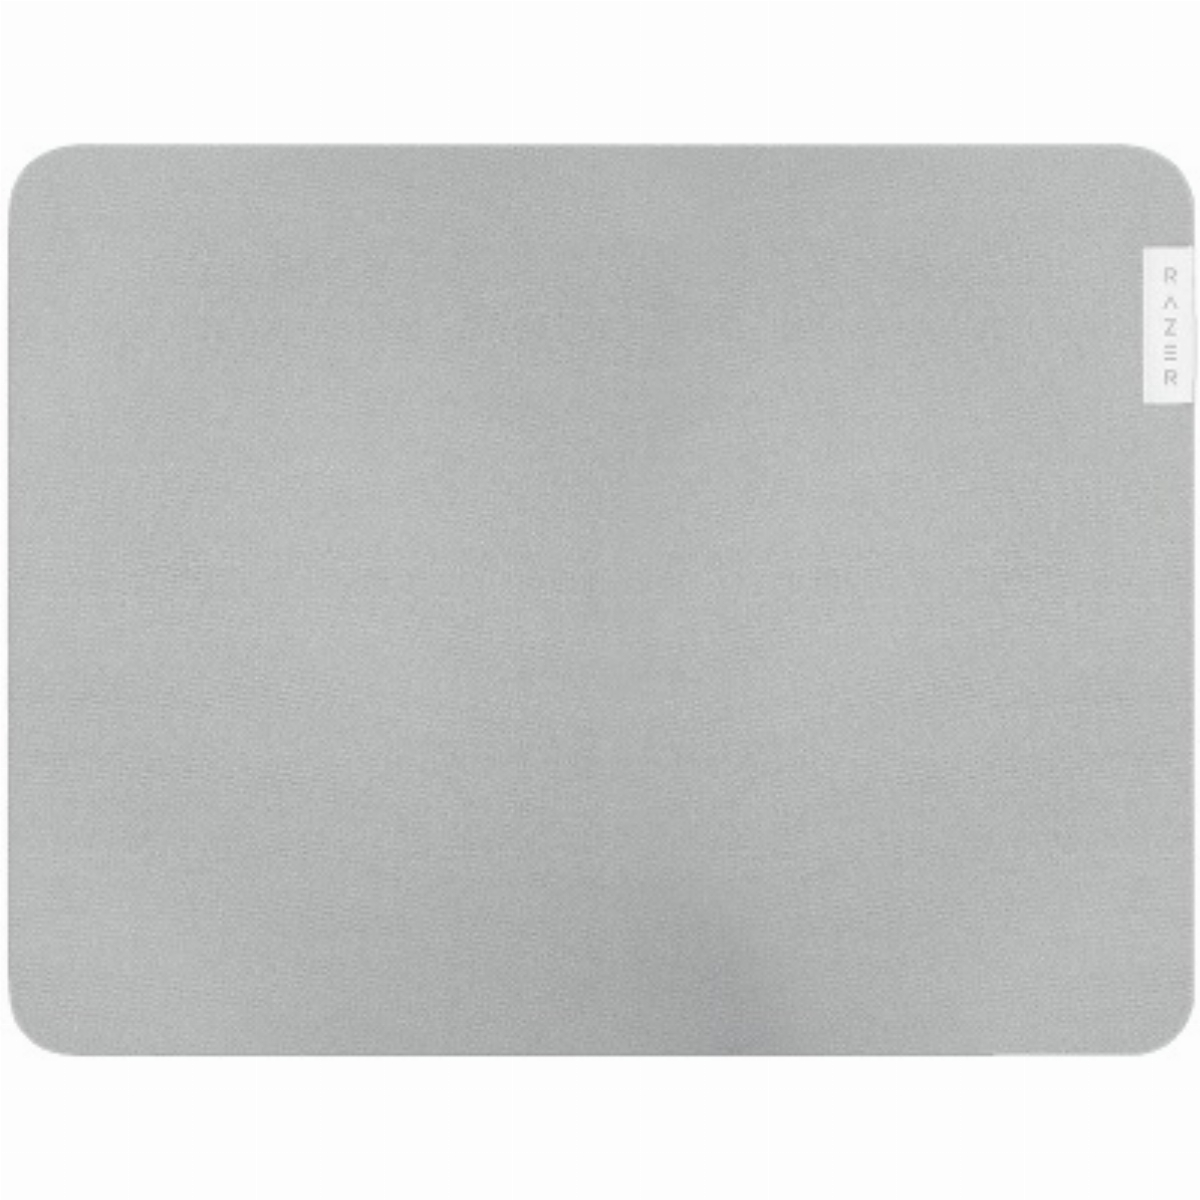 Геймърски пад Razer Pro Glide Soft Mouse Mat For Productivity